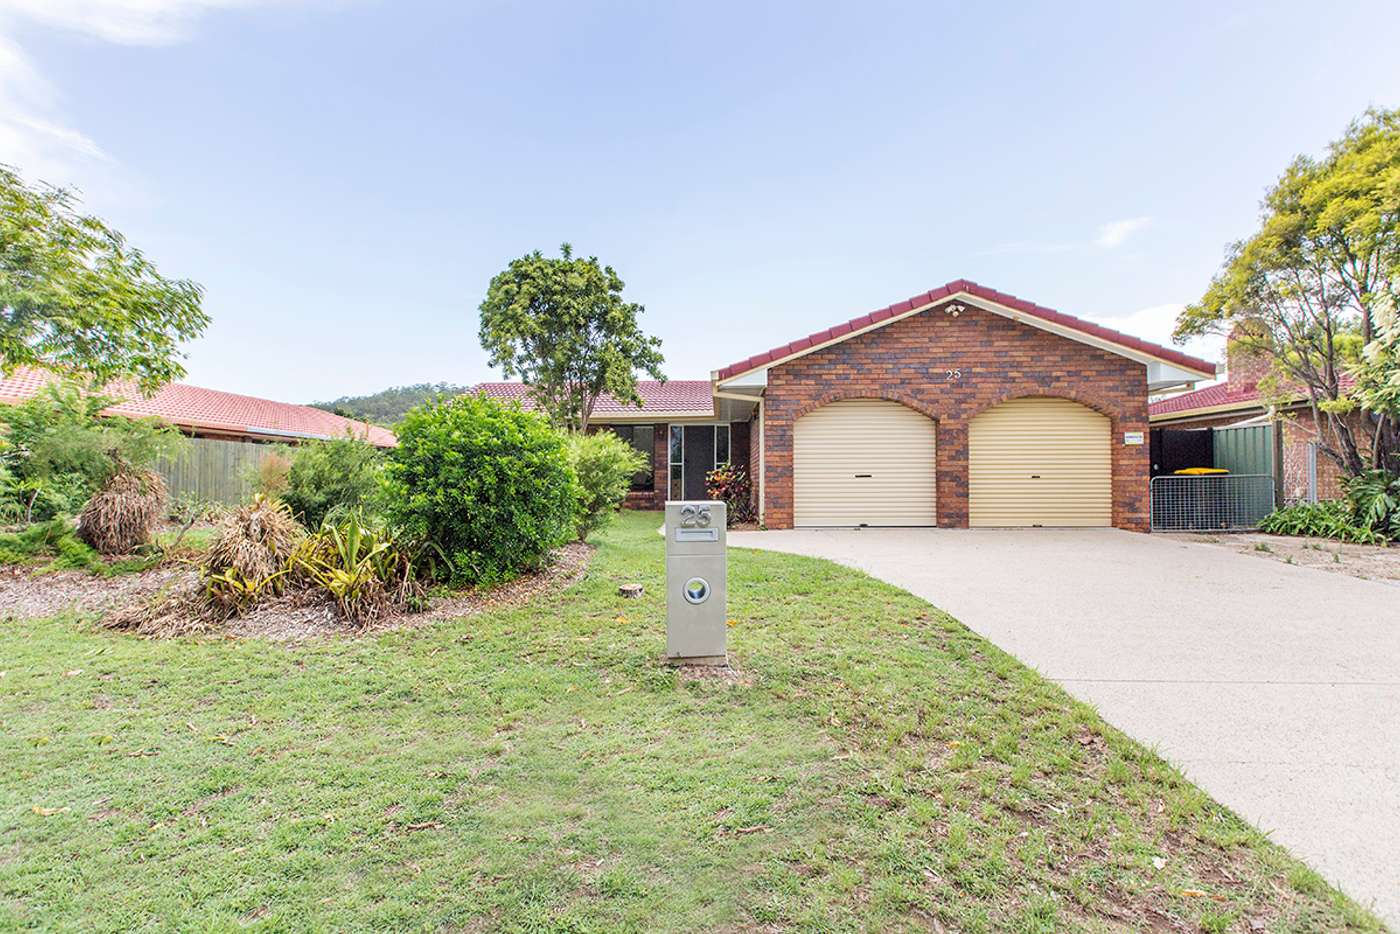 Main view of Homely house listing, 25 Boynedale Street, Carindale QLD 4152